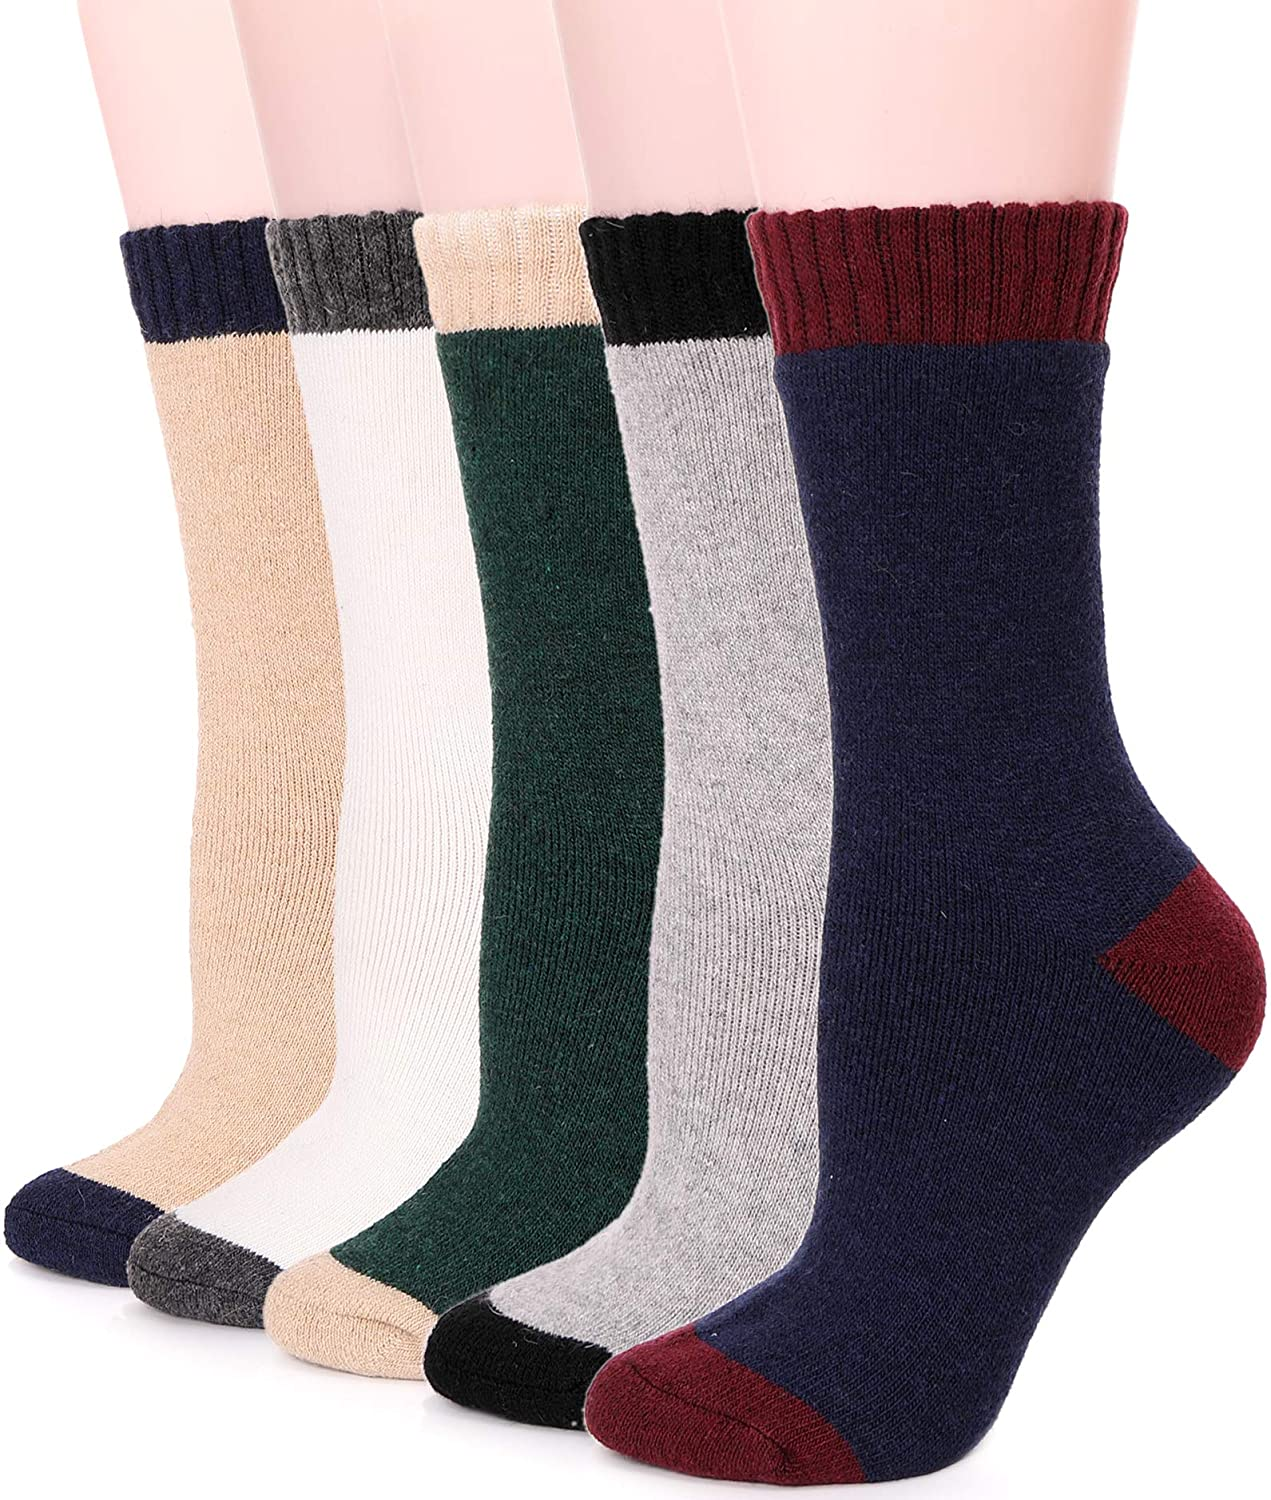 Womens Wool Fuzzy Socks Cabin Thick Heavy Thermal Warm Winter Crew Socks For Cold Weather 5 Pack